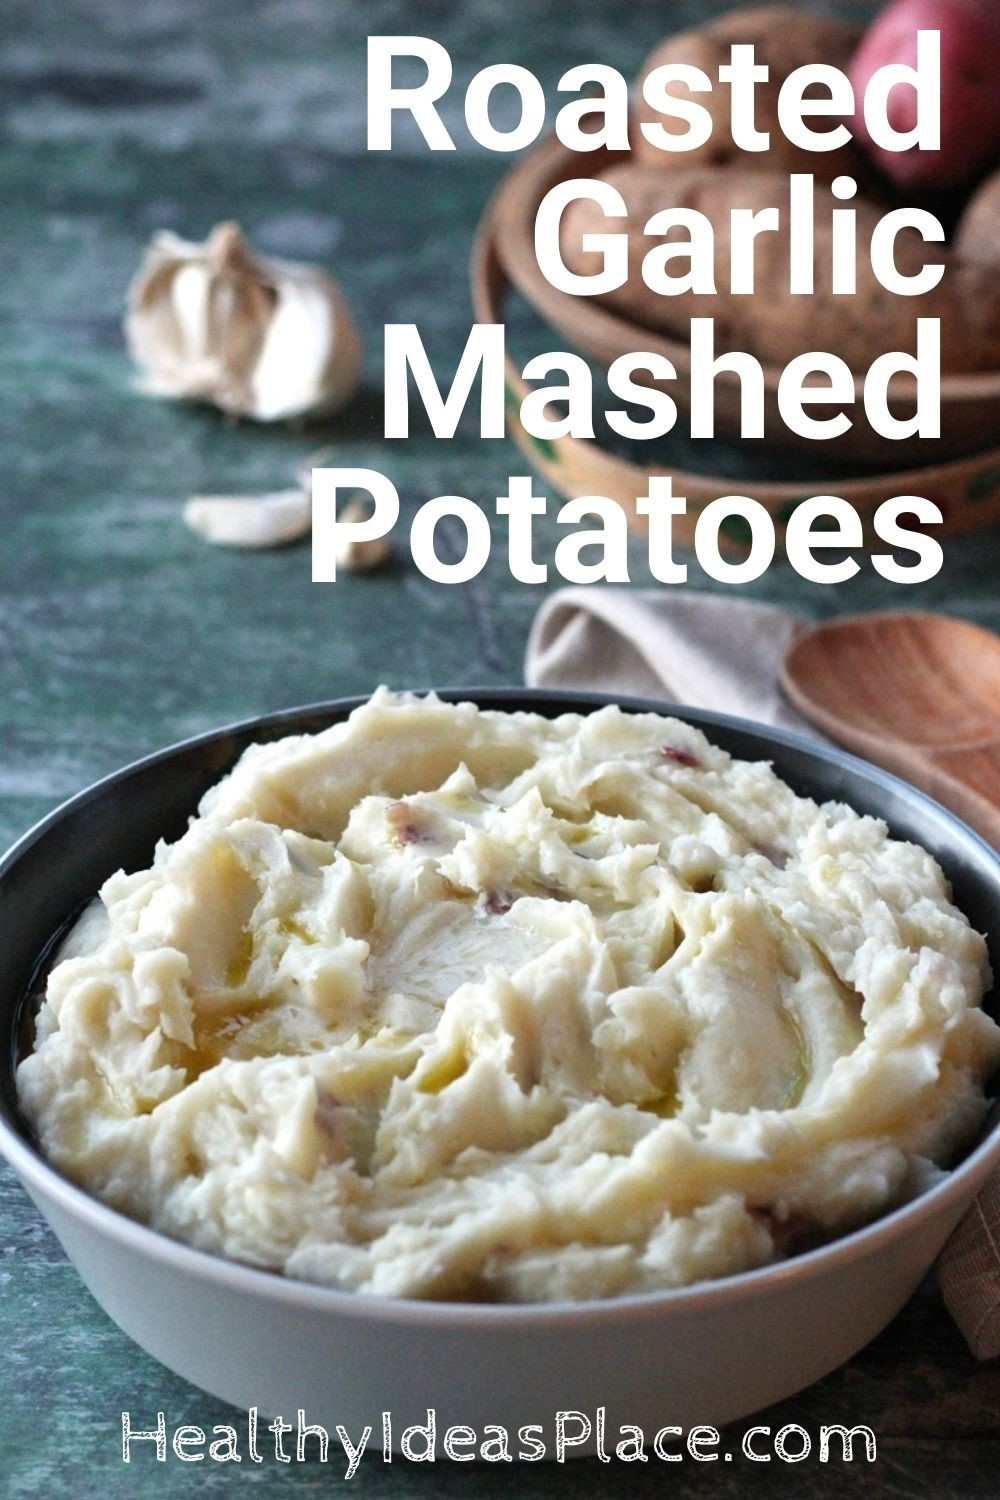 Mashed potatoes in bowl against green background